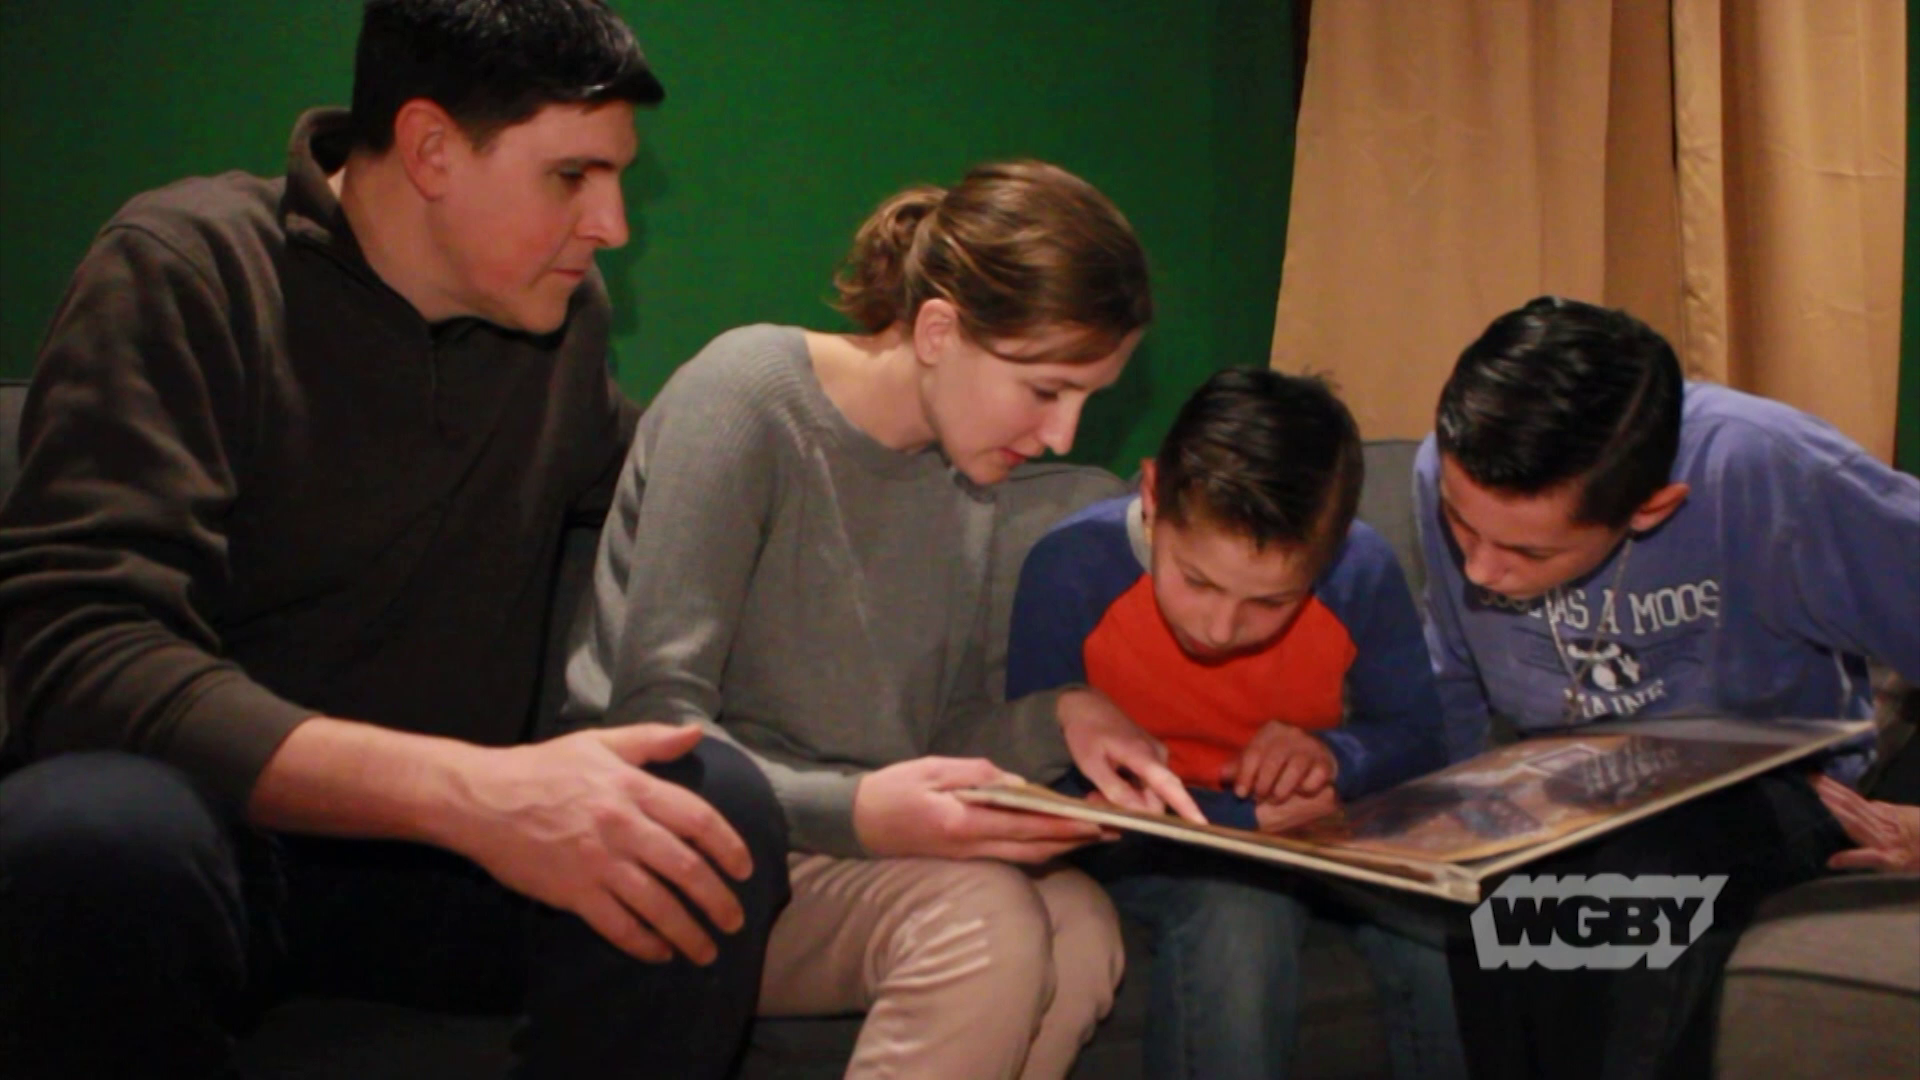 Western Mass parents Vanessa and Clay share their adoption journey, and how adopting their sons on National Adoption Day changed their lives.